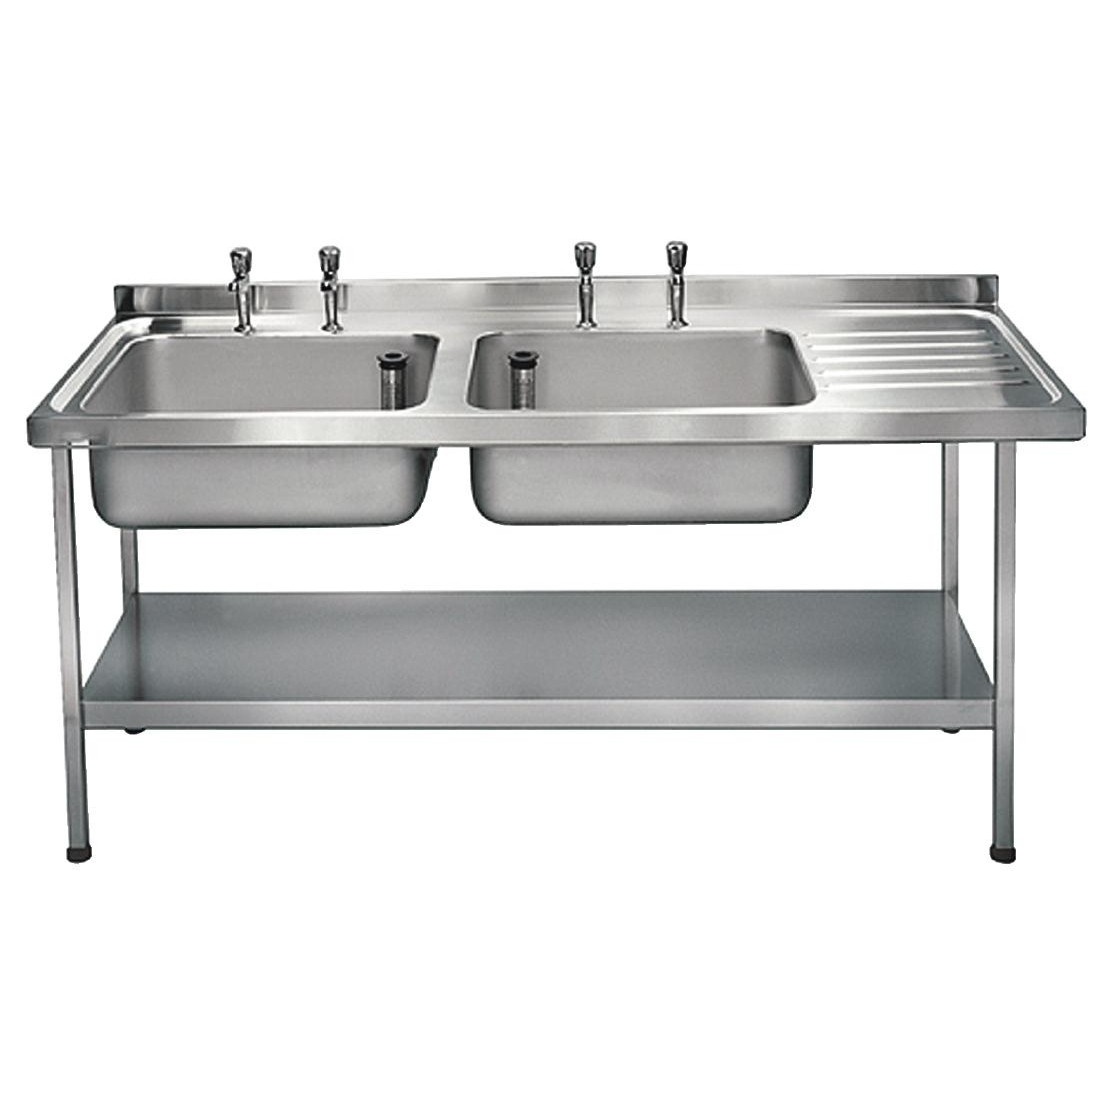 9fd290d1b1 Franke Sissons Stainless Steel Sink Double Left Hand Bowl 1800x650mm. Zoom